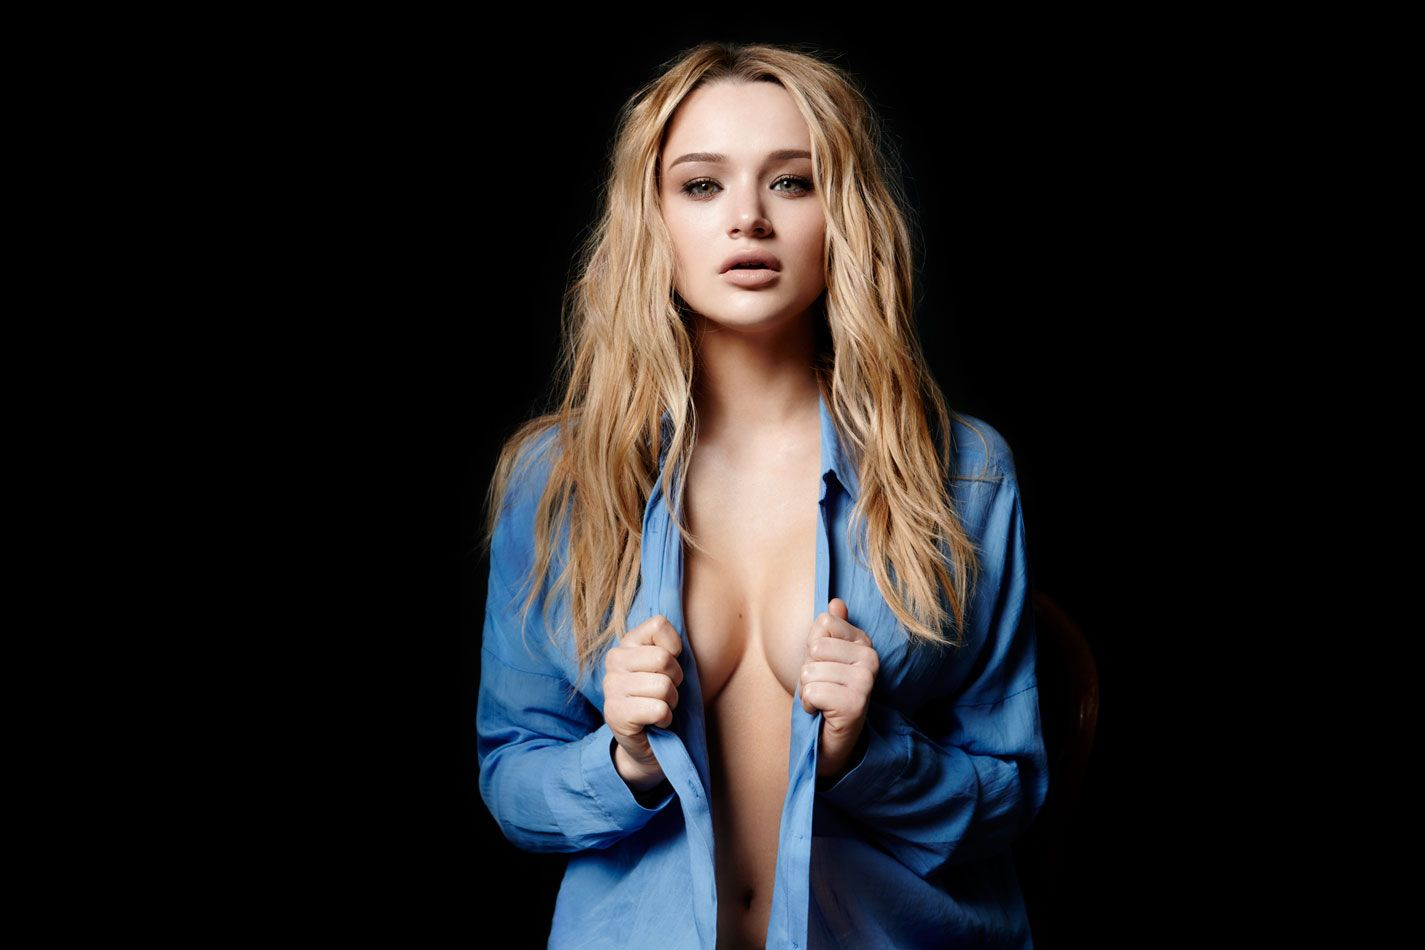 Topless Photo of Hunter King